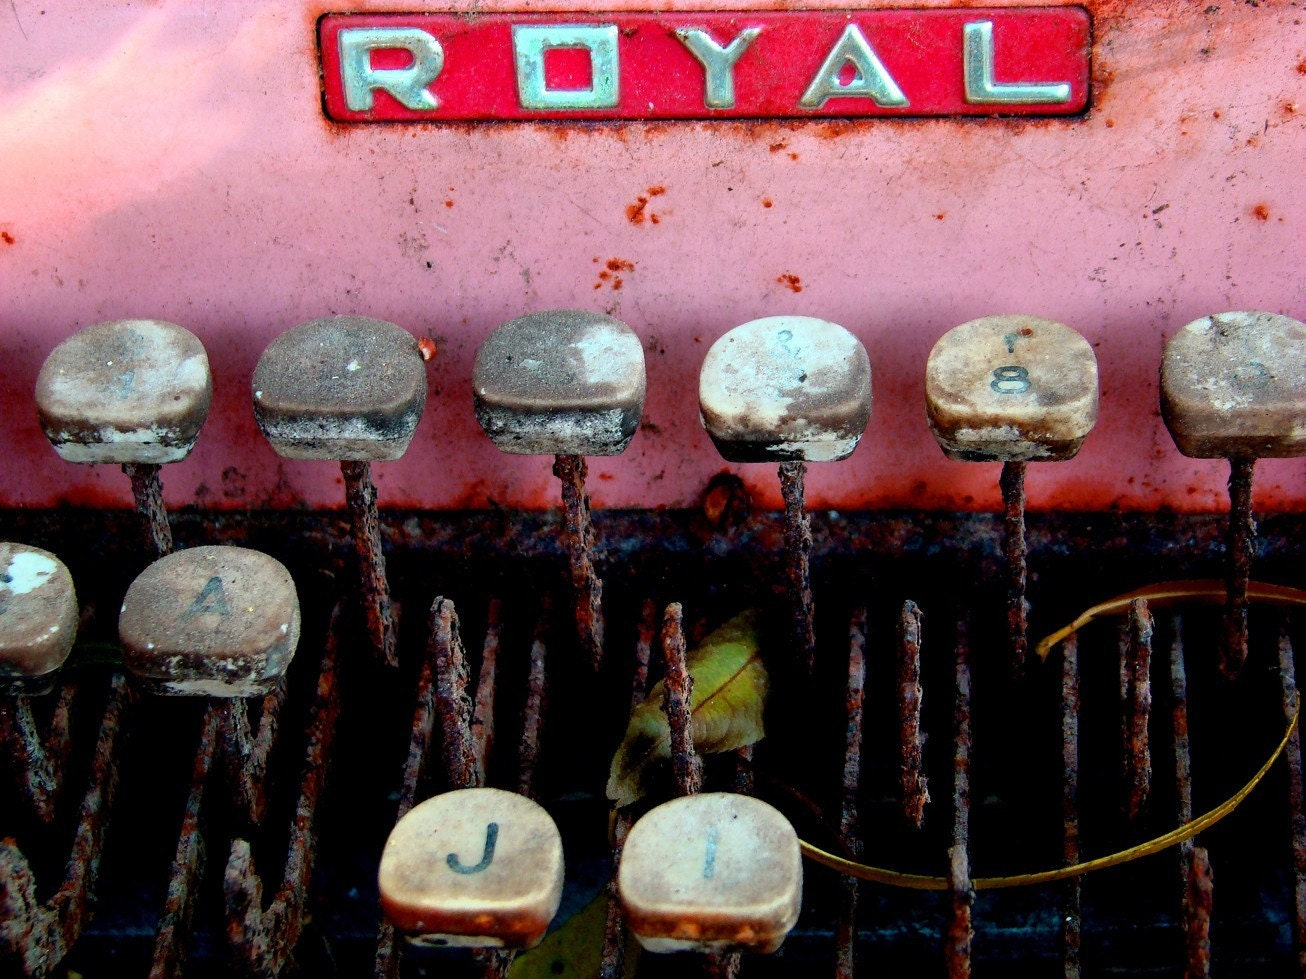 8 x 10 Royalty-Vintage Royal Typewriter in Pink and Red